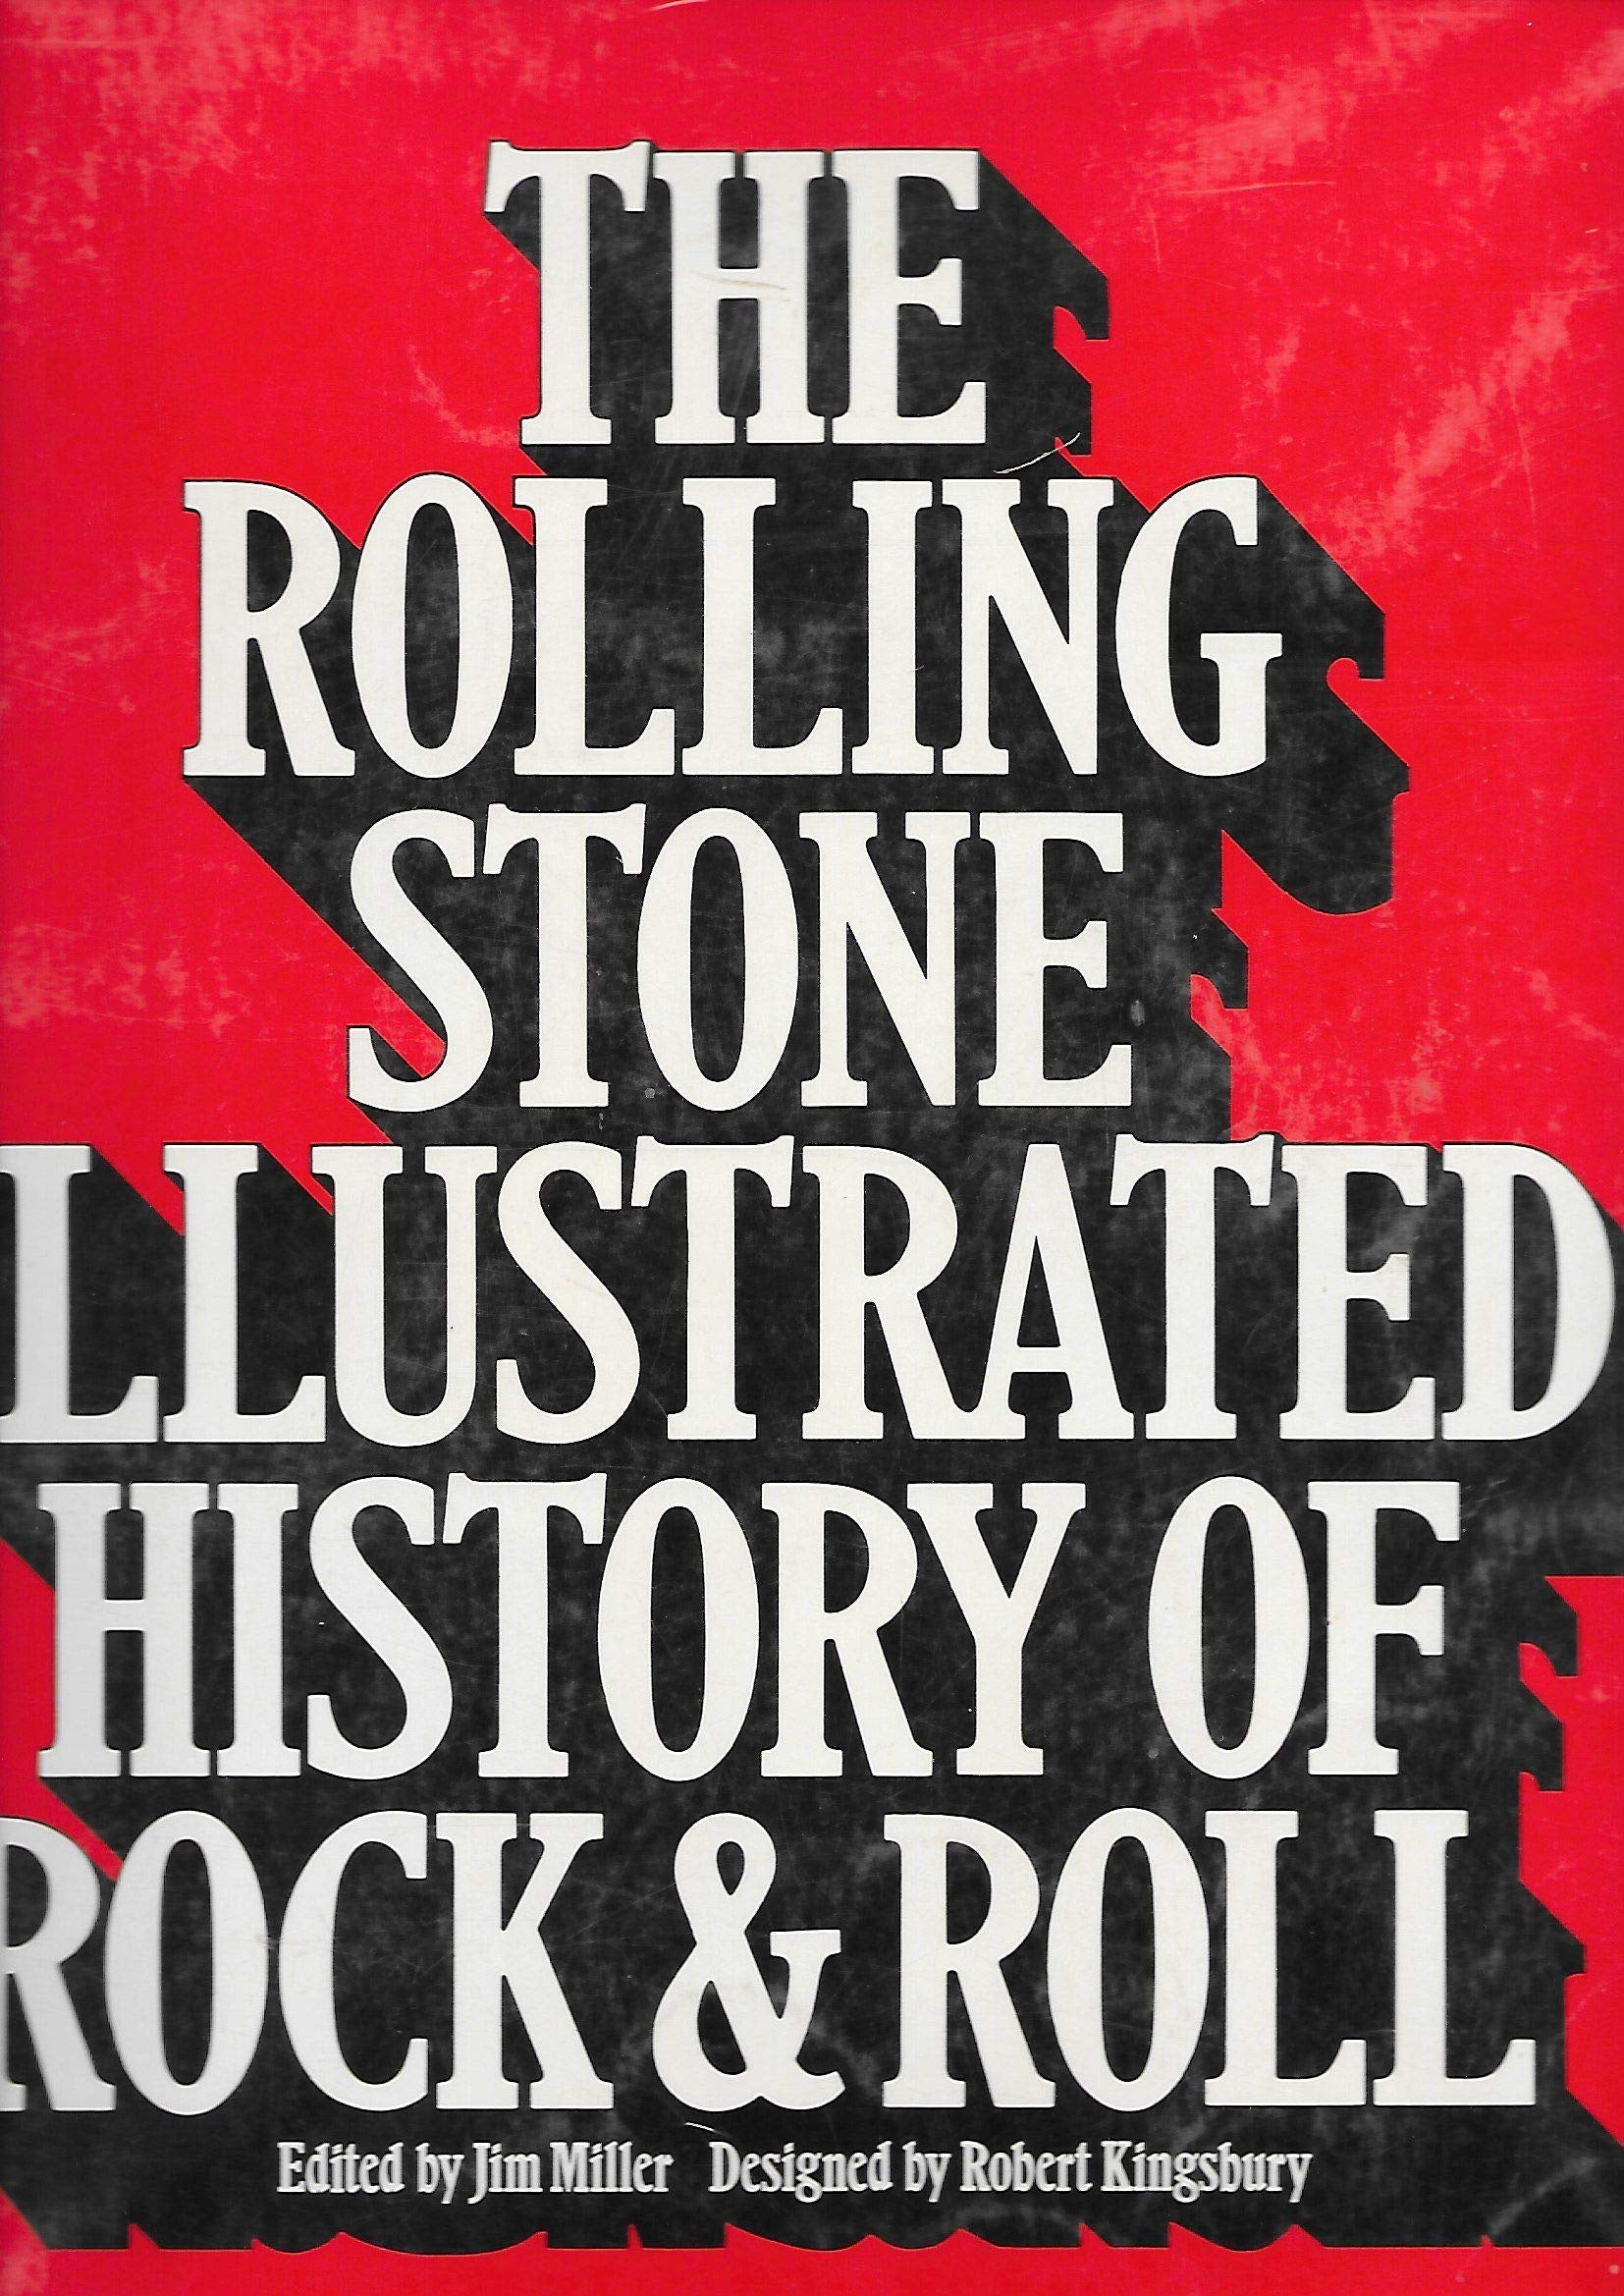 THE ROLLING STONE ILLUSTRATED HISTORY OF ROCK AND ROLL-JIM MILLER BOOK G